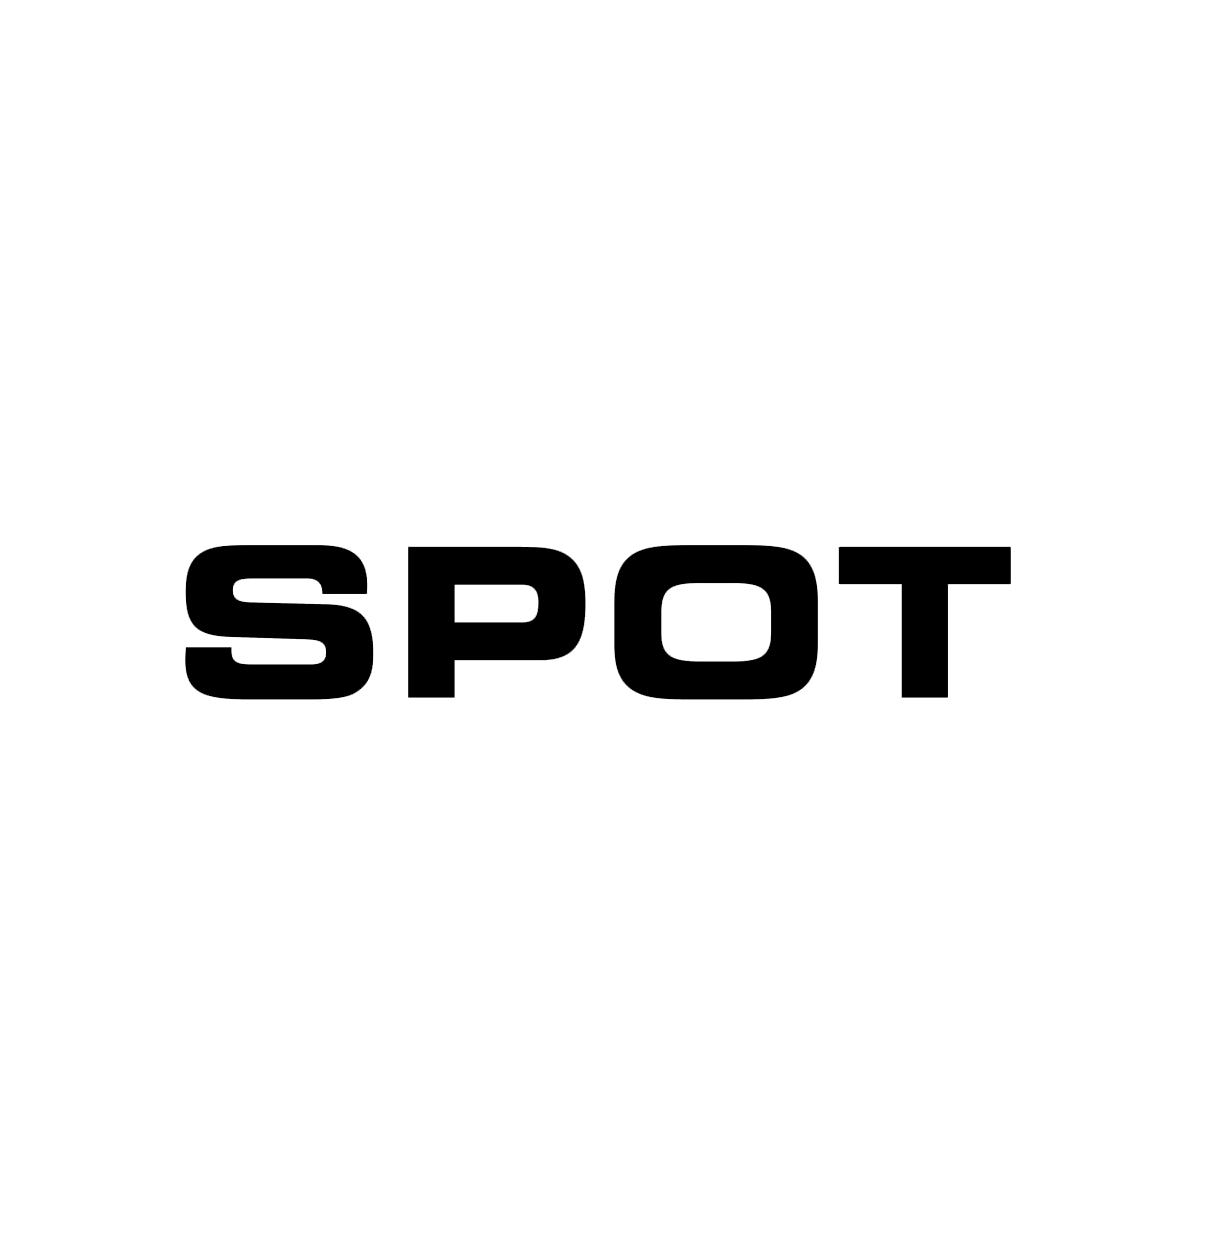 On The Spot Cleaners logo